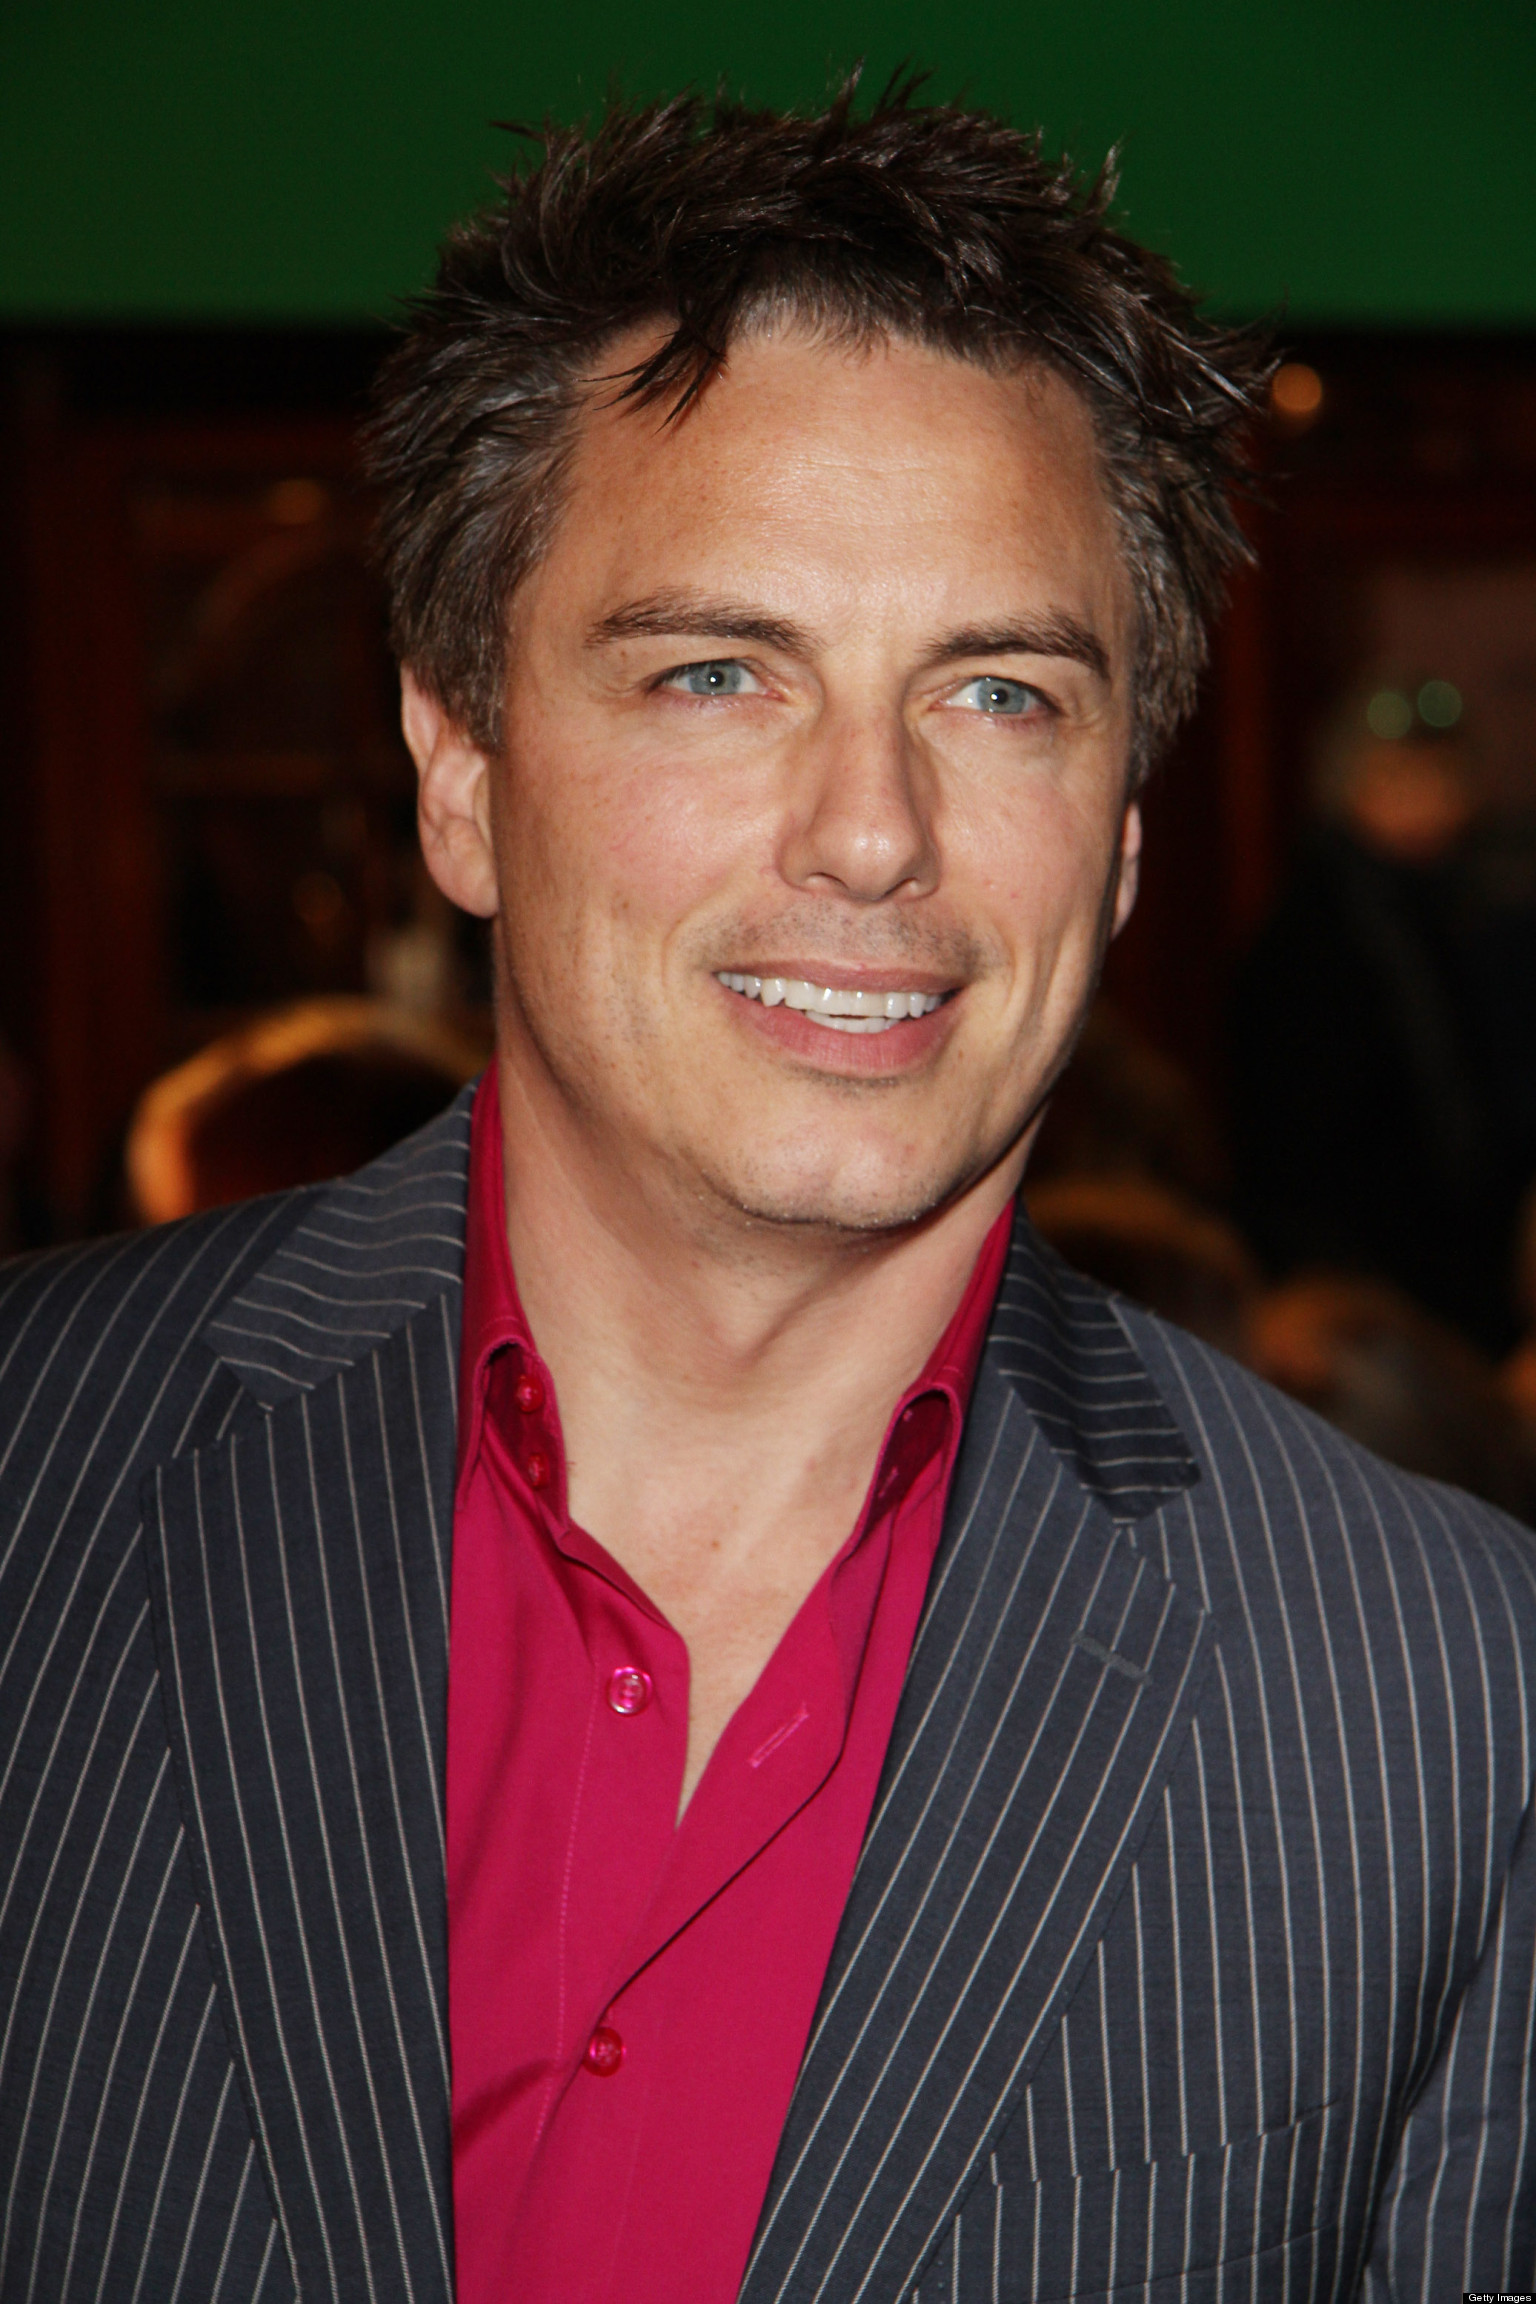 john barrowman - photo #22